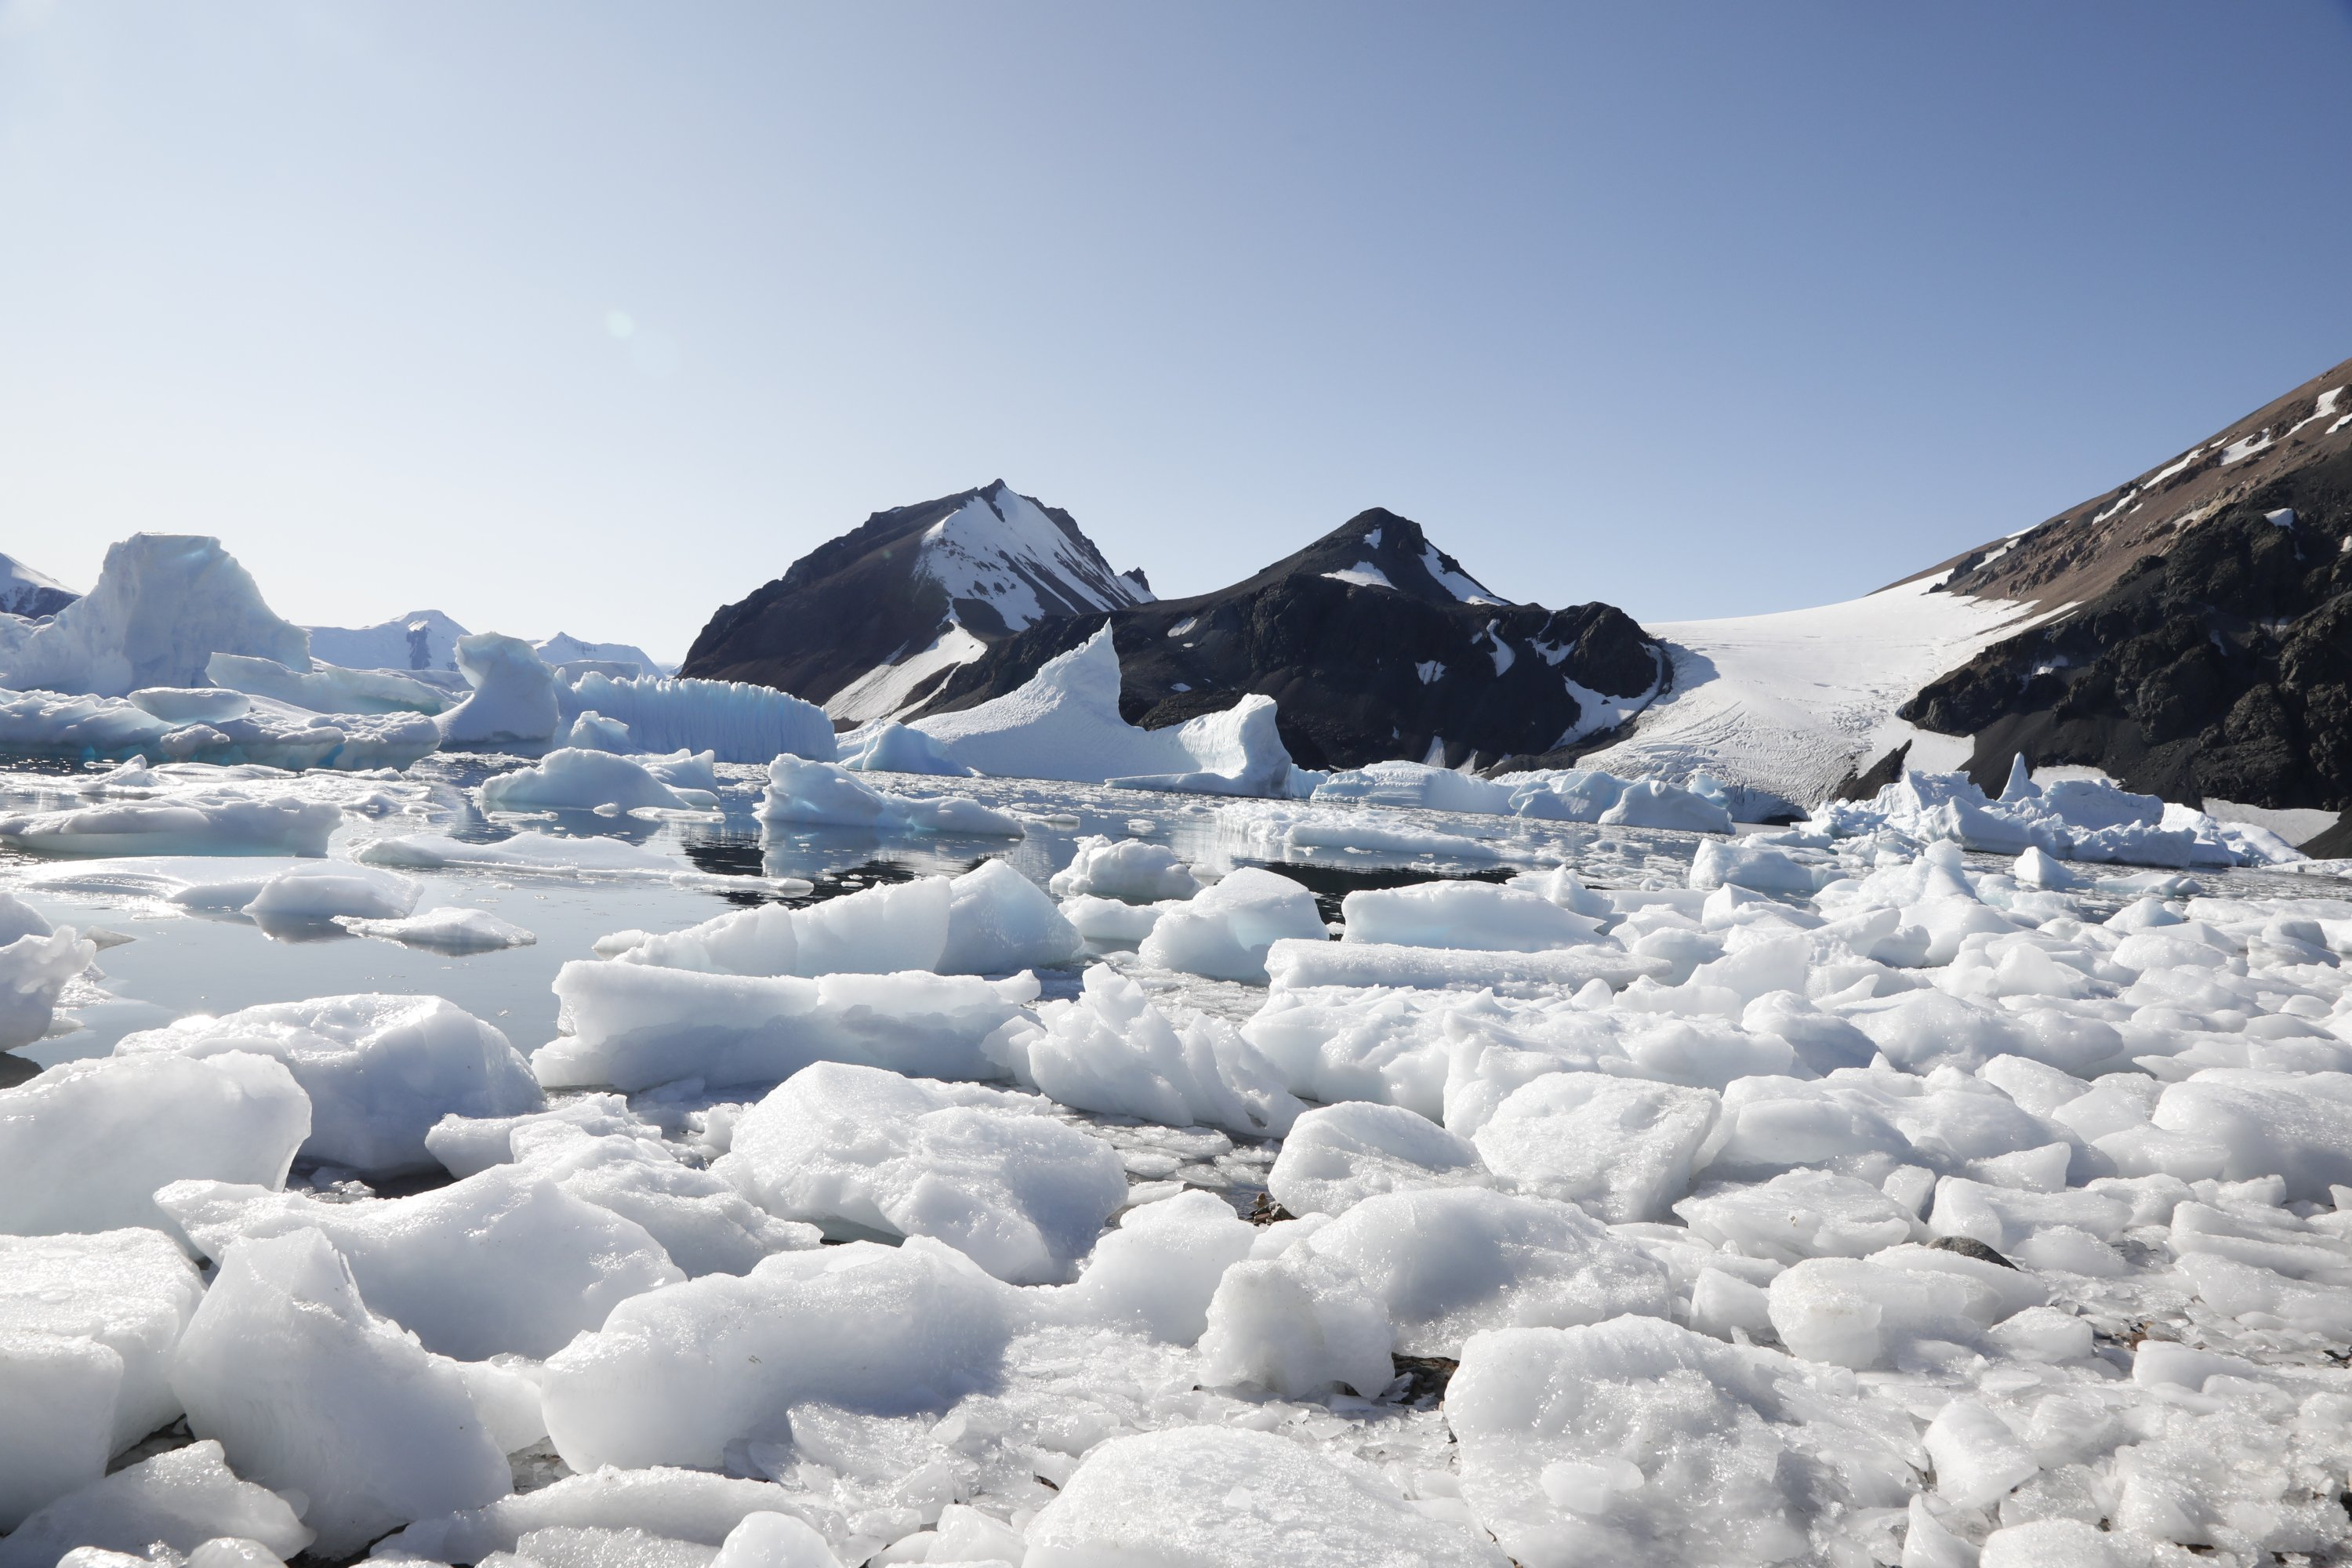 A snippet from Antarctica's ice floes and waters. (Photo by Hayrettin Bektaş)